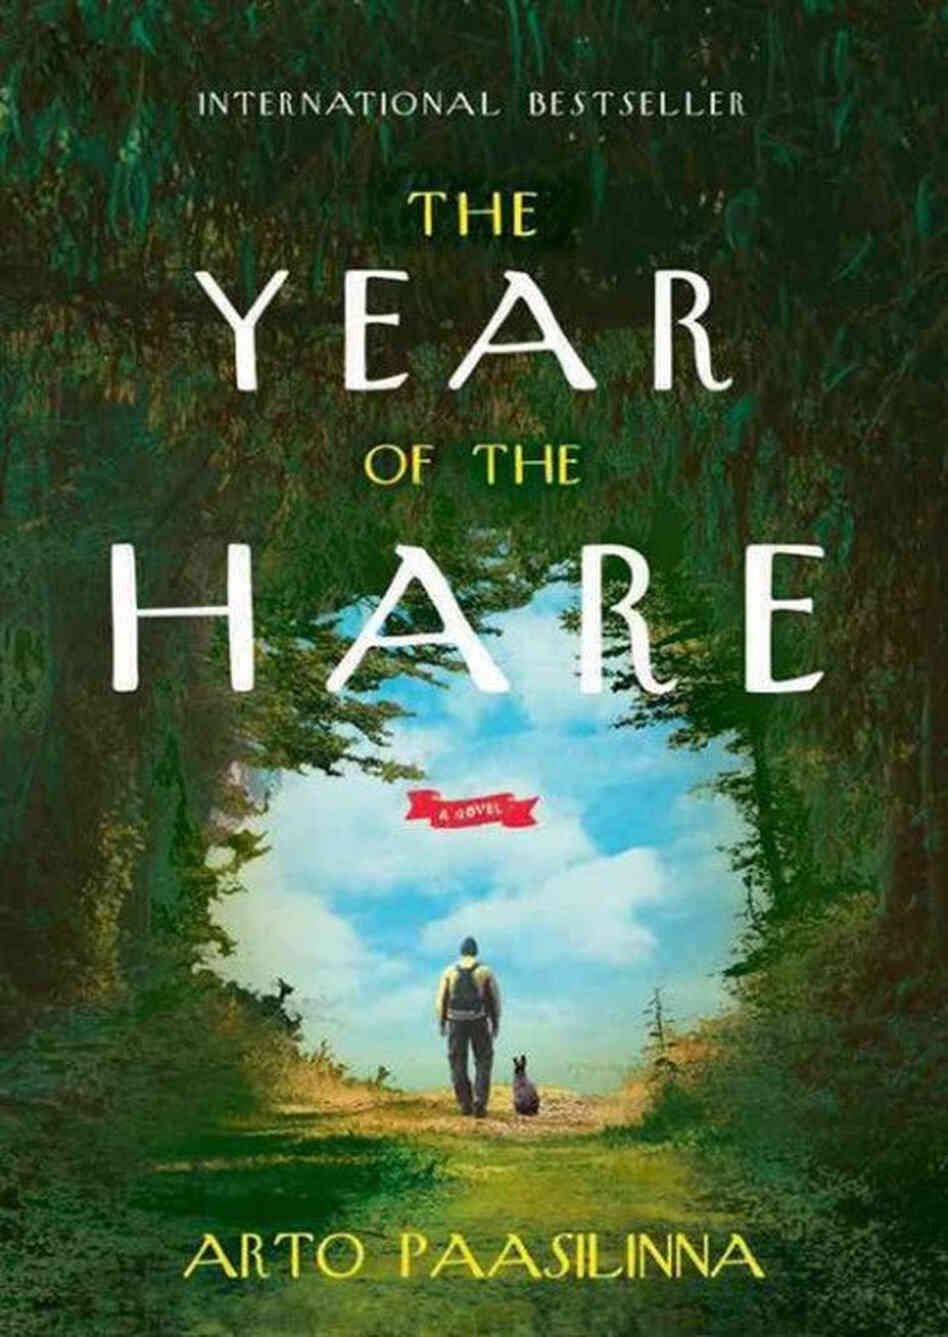 Cover, The Year of the Hare